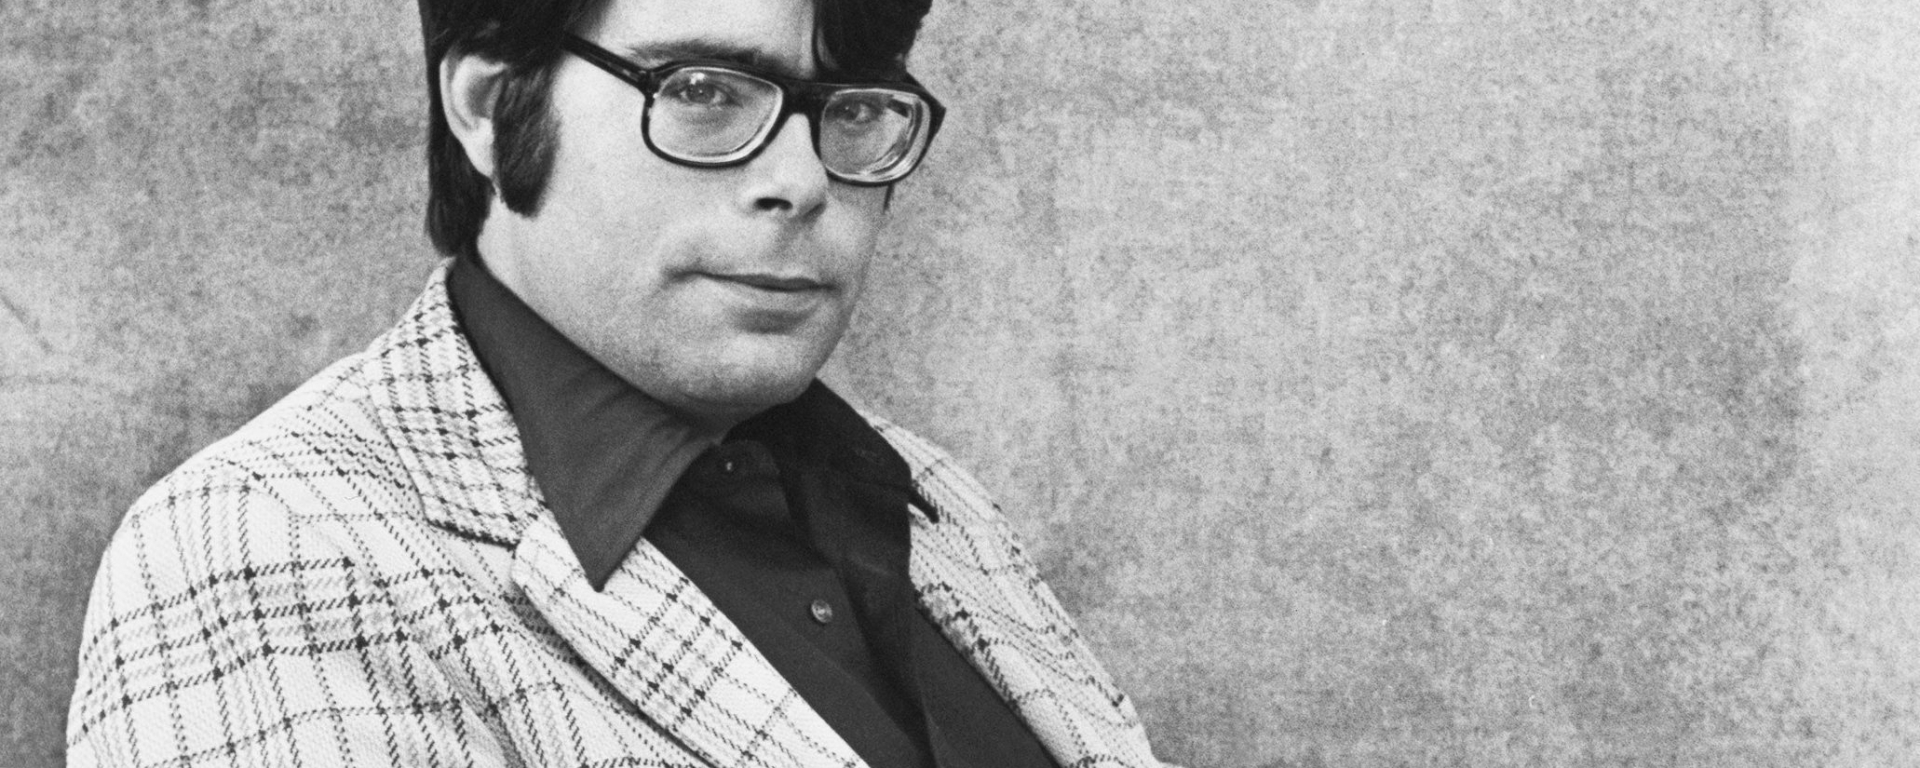 Stephen King - CineKing 40 - CineFatti